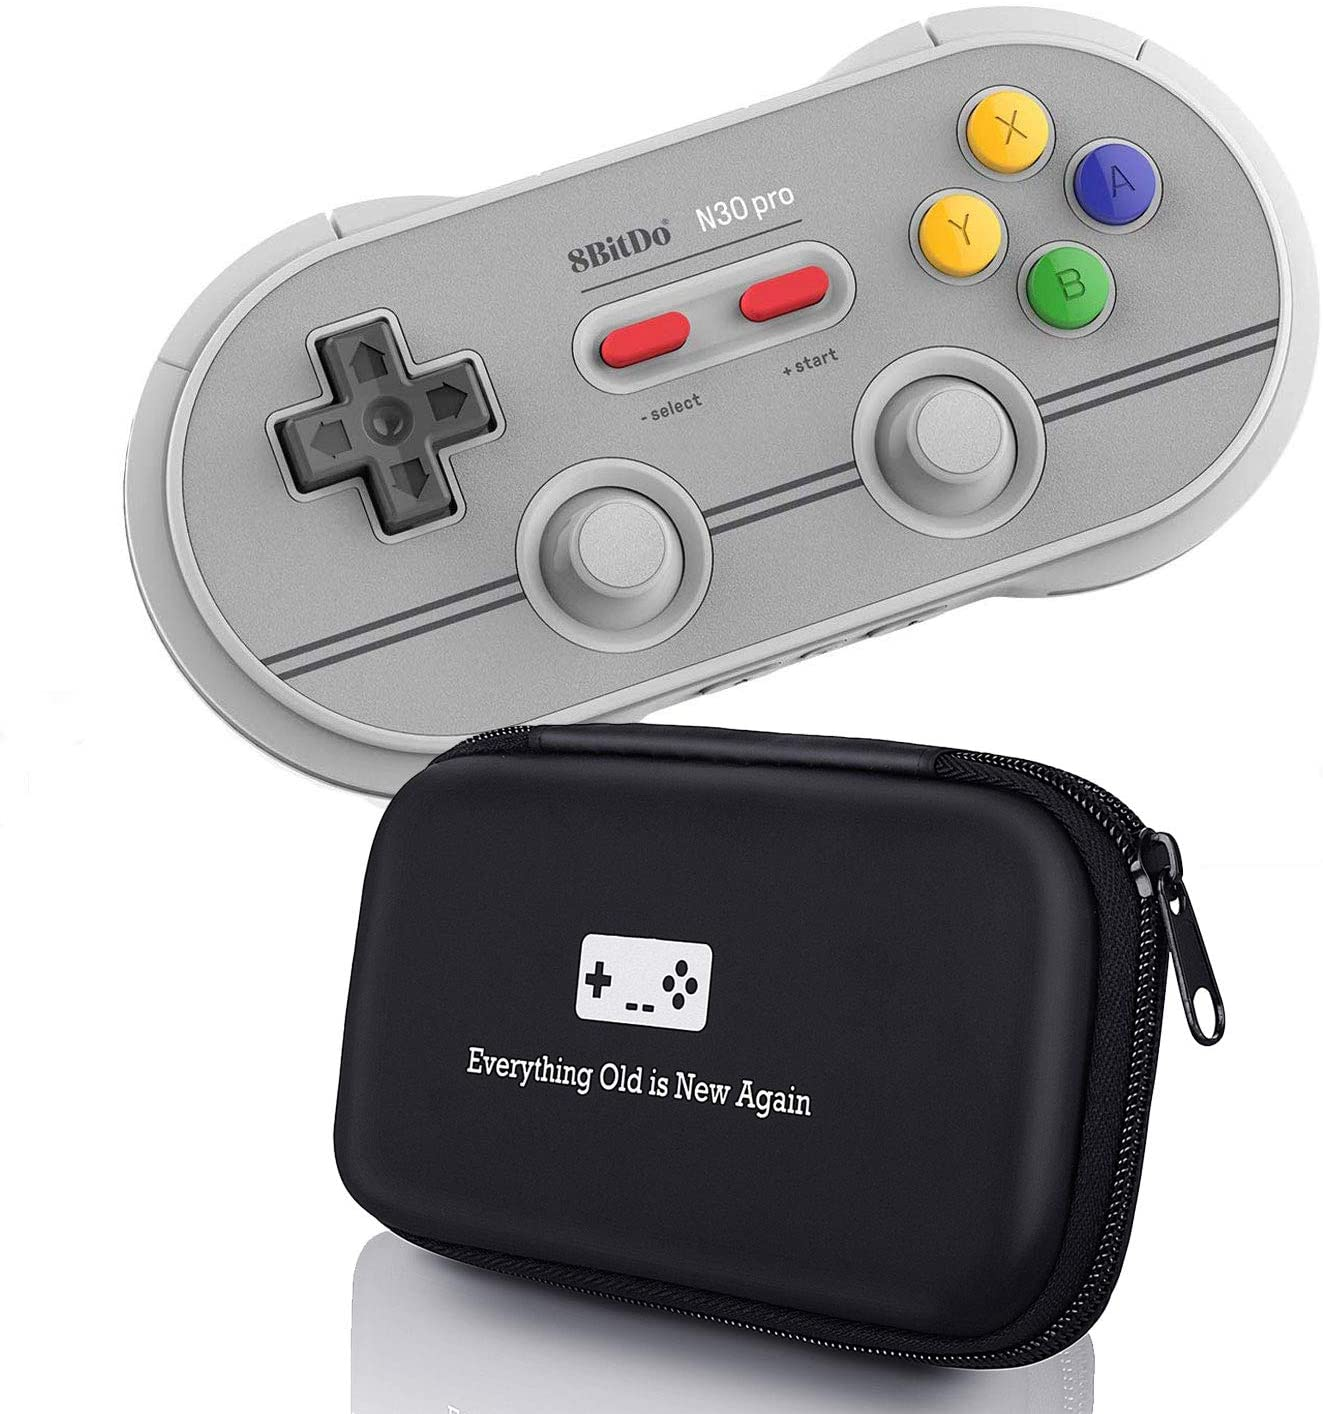 Geek Theory 8Bitdo N30 Pro 2 Controller Bundle (6 Edition) - Includes Bonus Carrying Case - Updated 2019 Version - Android/Mac/PC/Switch/NES and SNES Classic